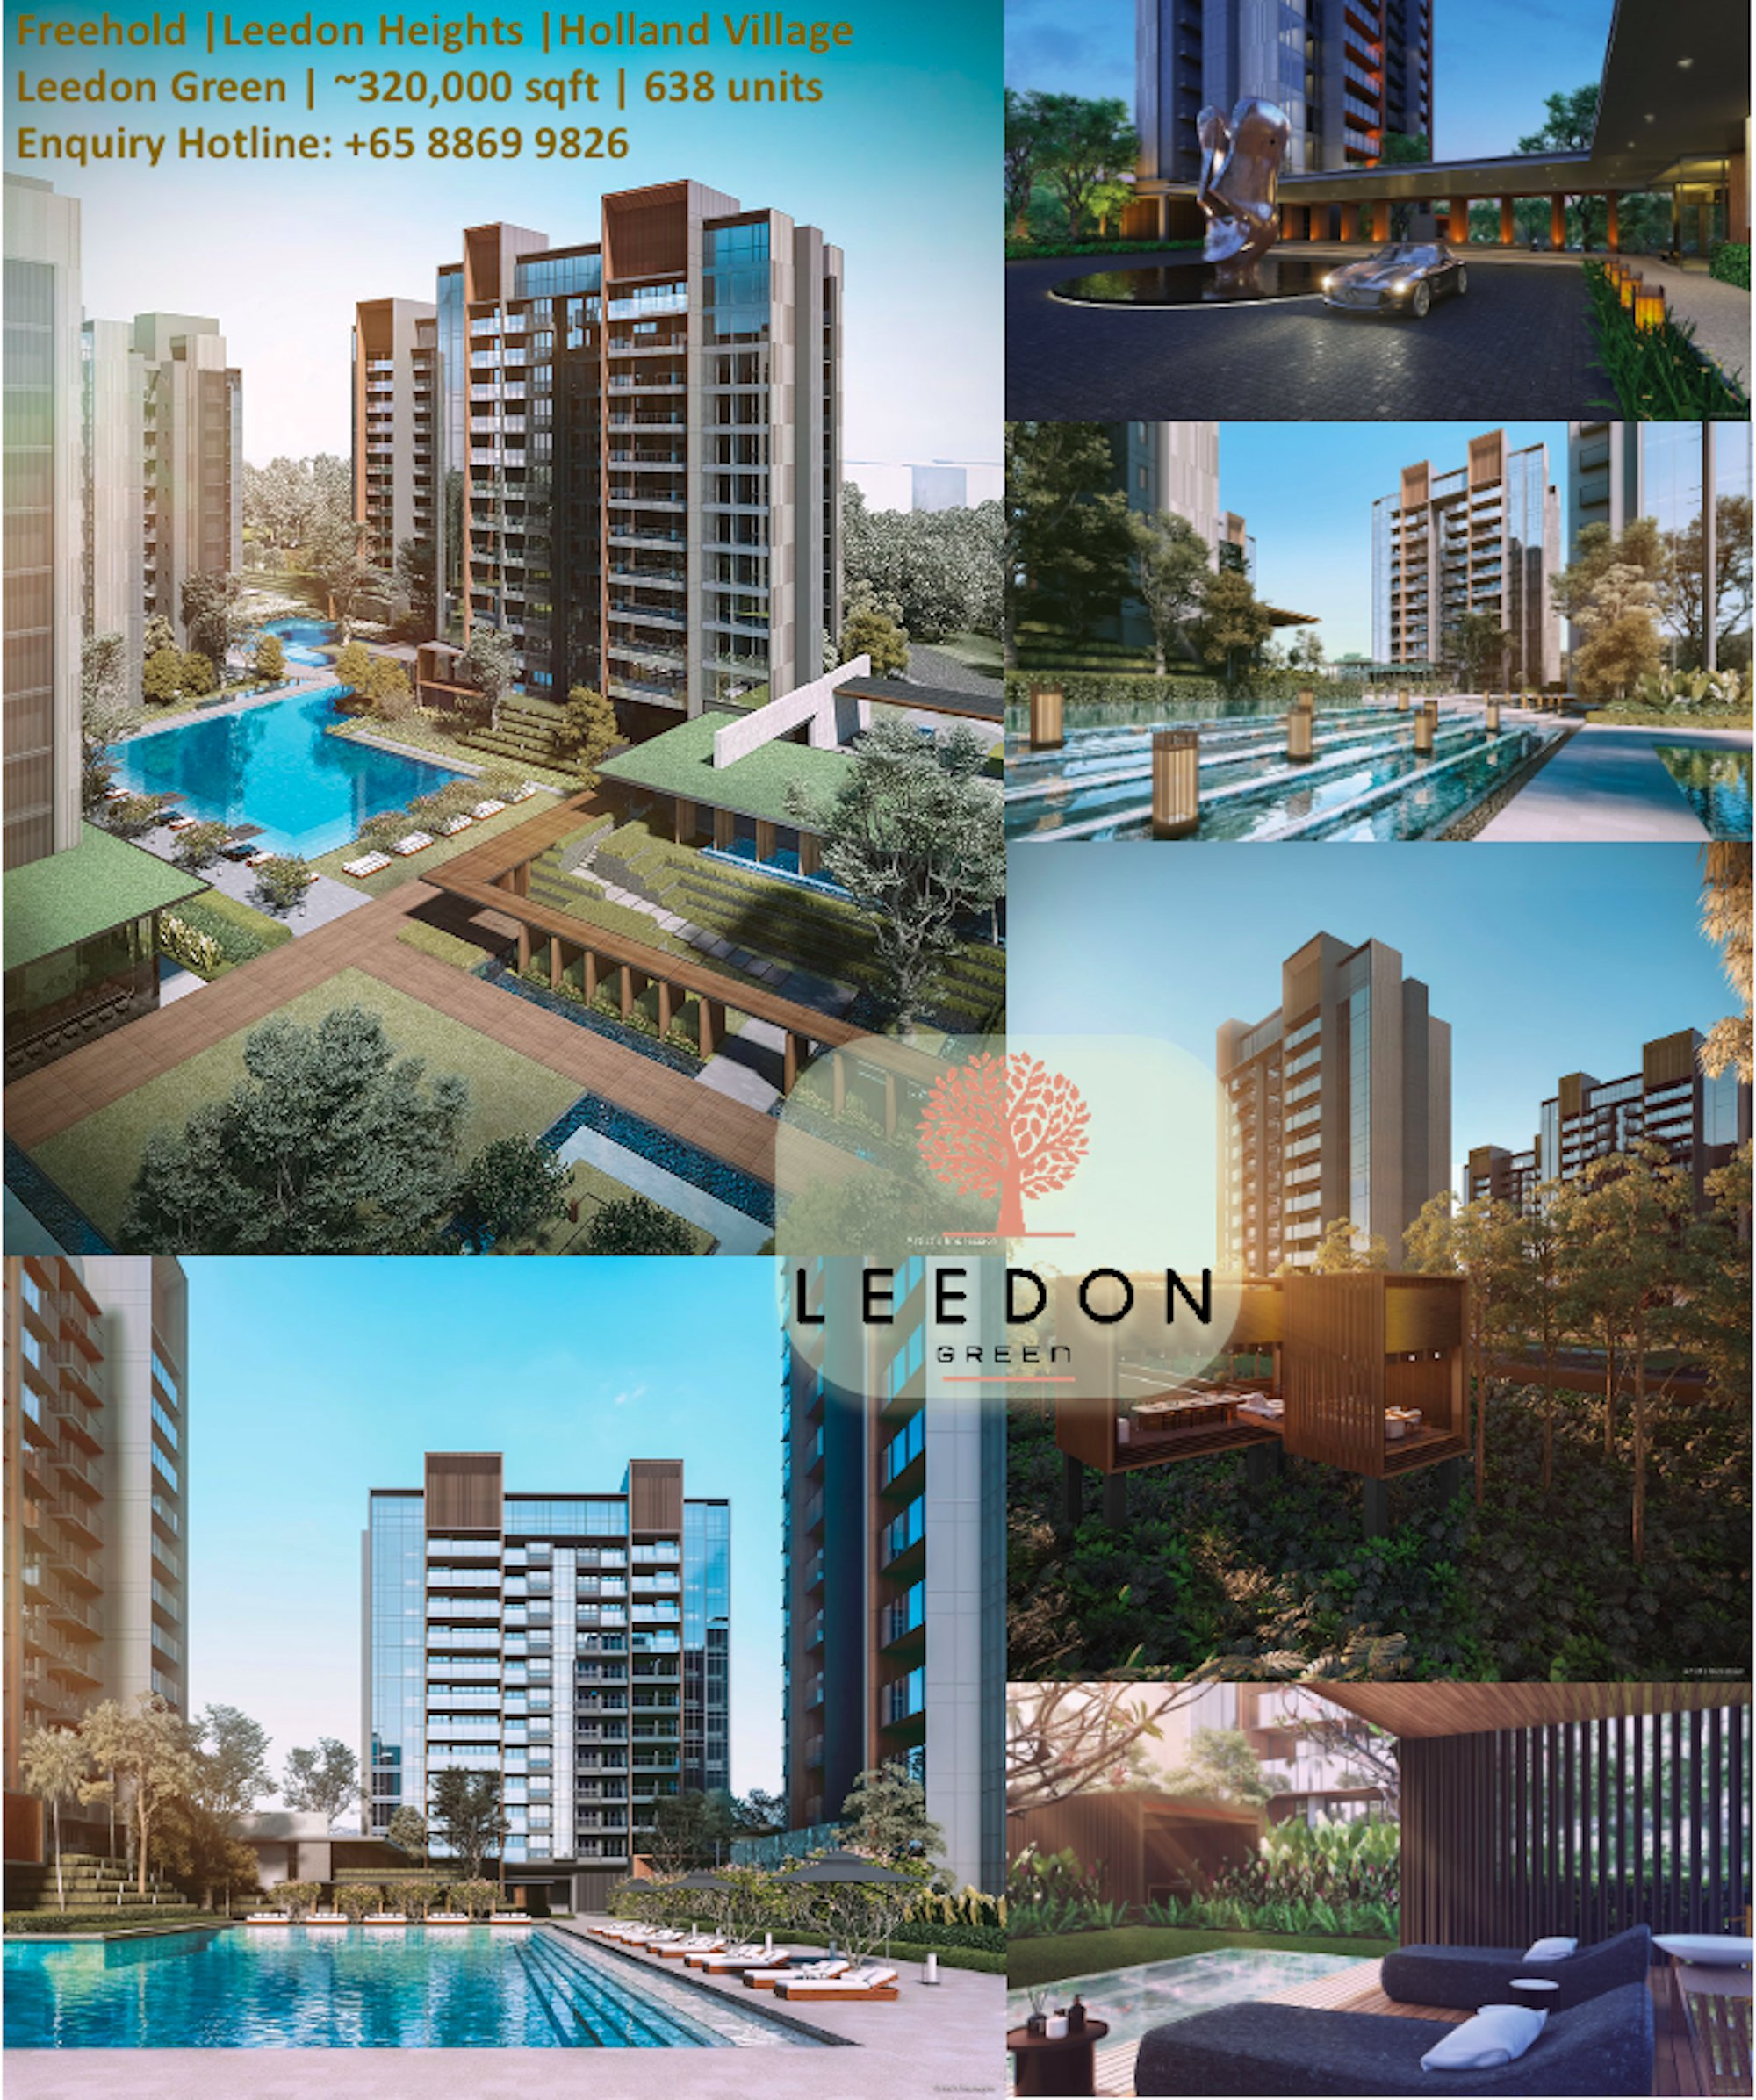 绿墩雅苑永久地契公寓 leedon green freehold overview